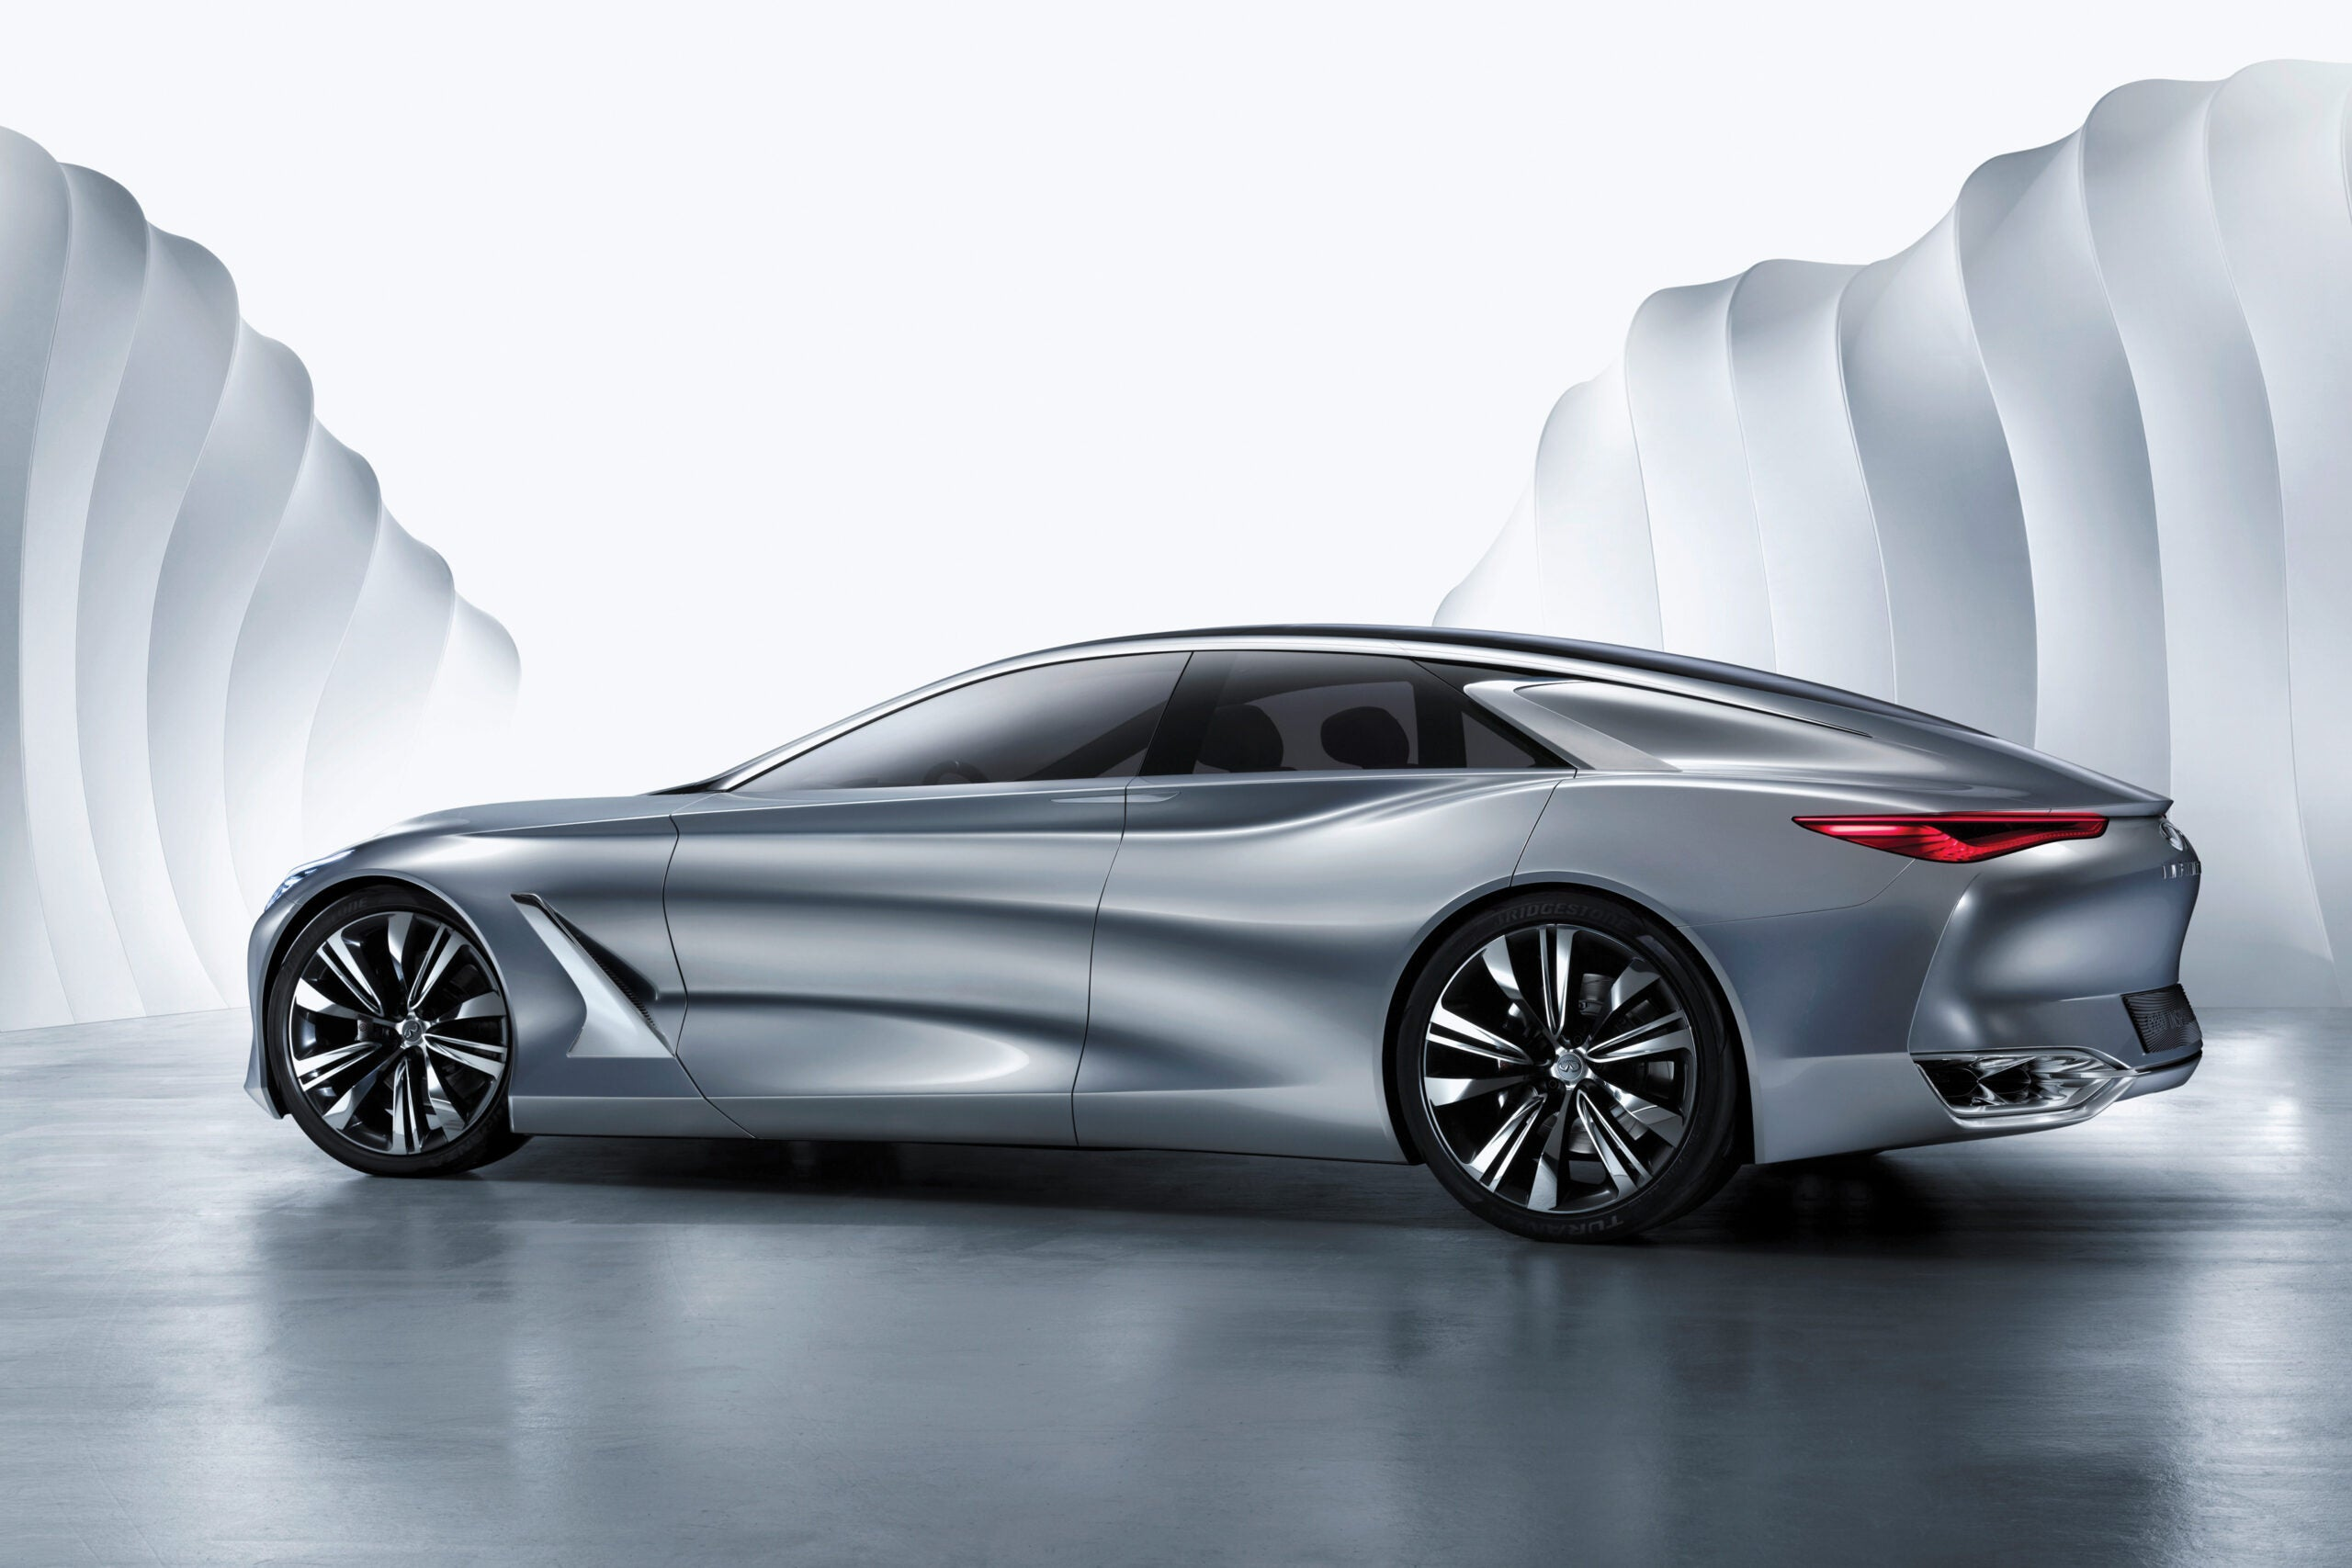 Car Design Of The Month: The Infiniti Q80 Inspiration